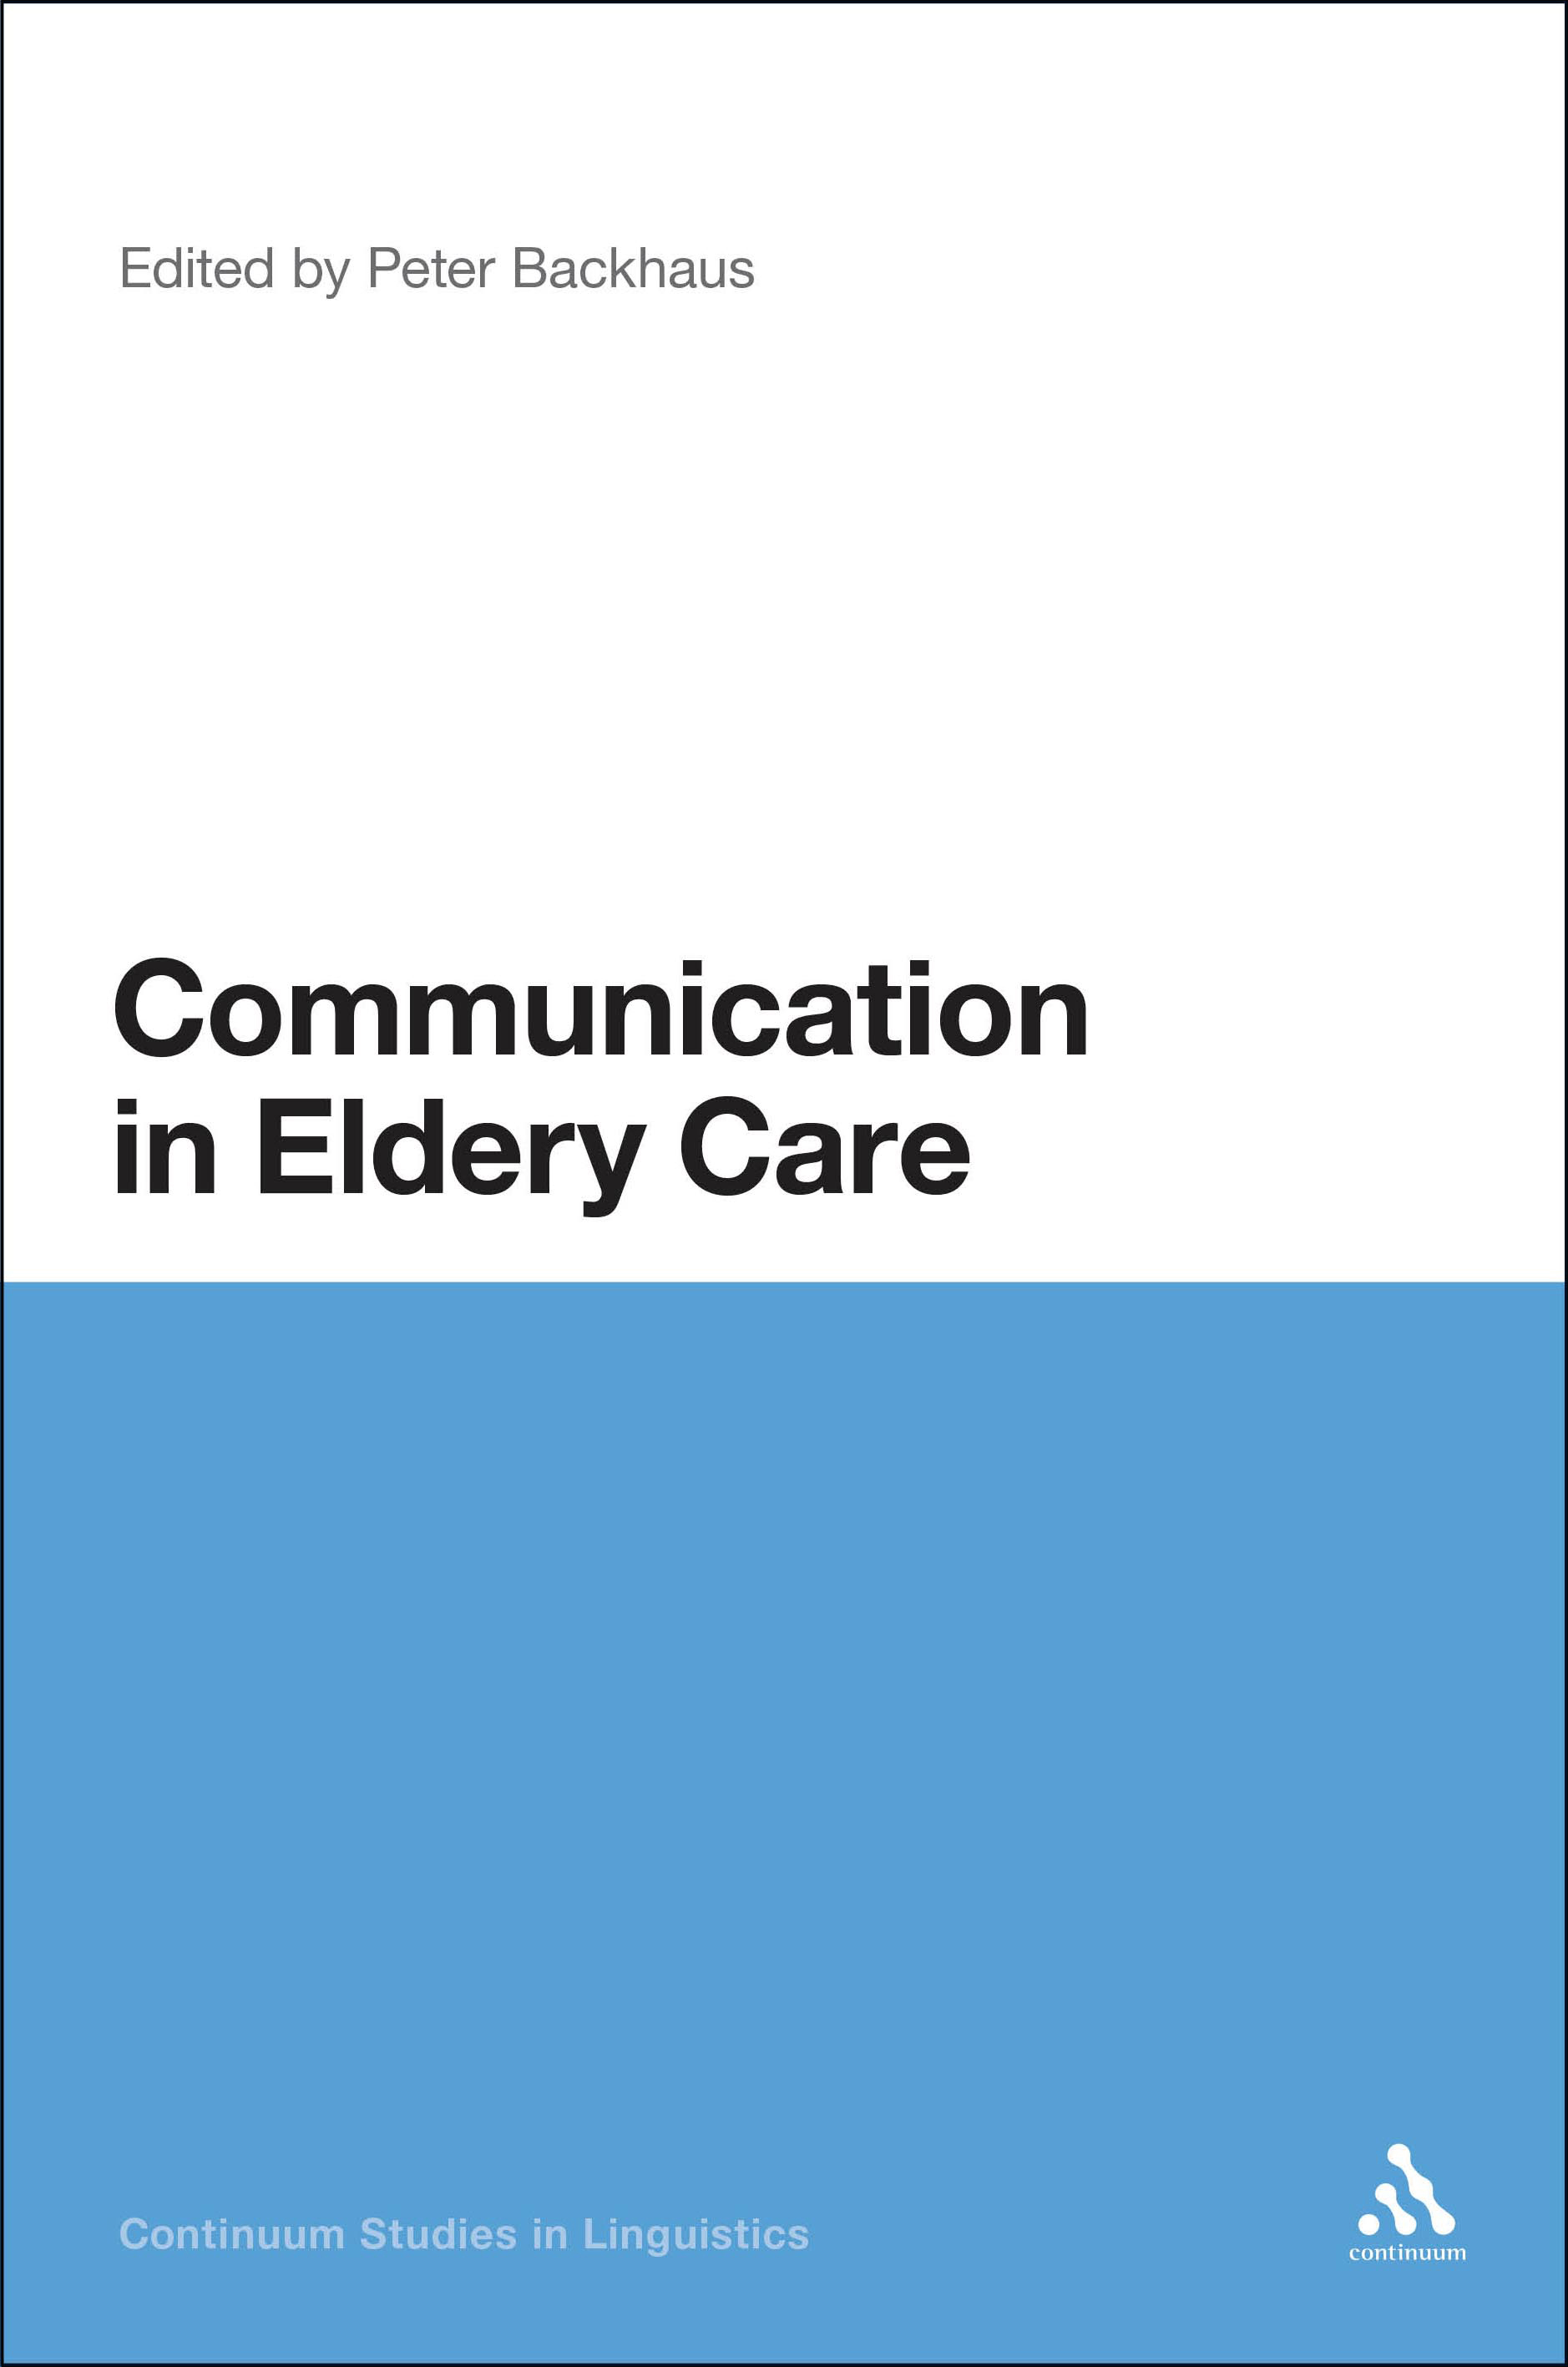 Communication in Elderly Care